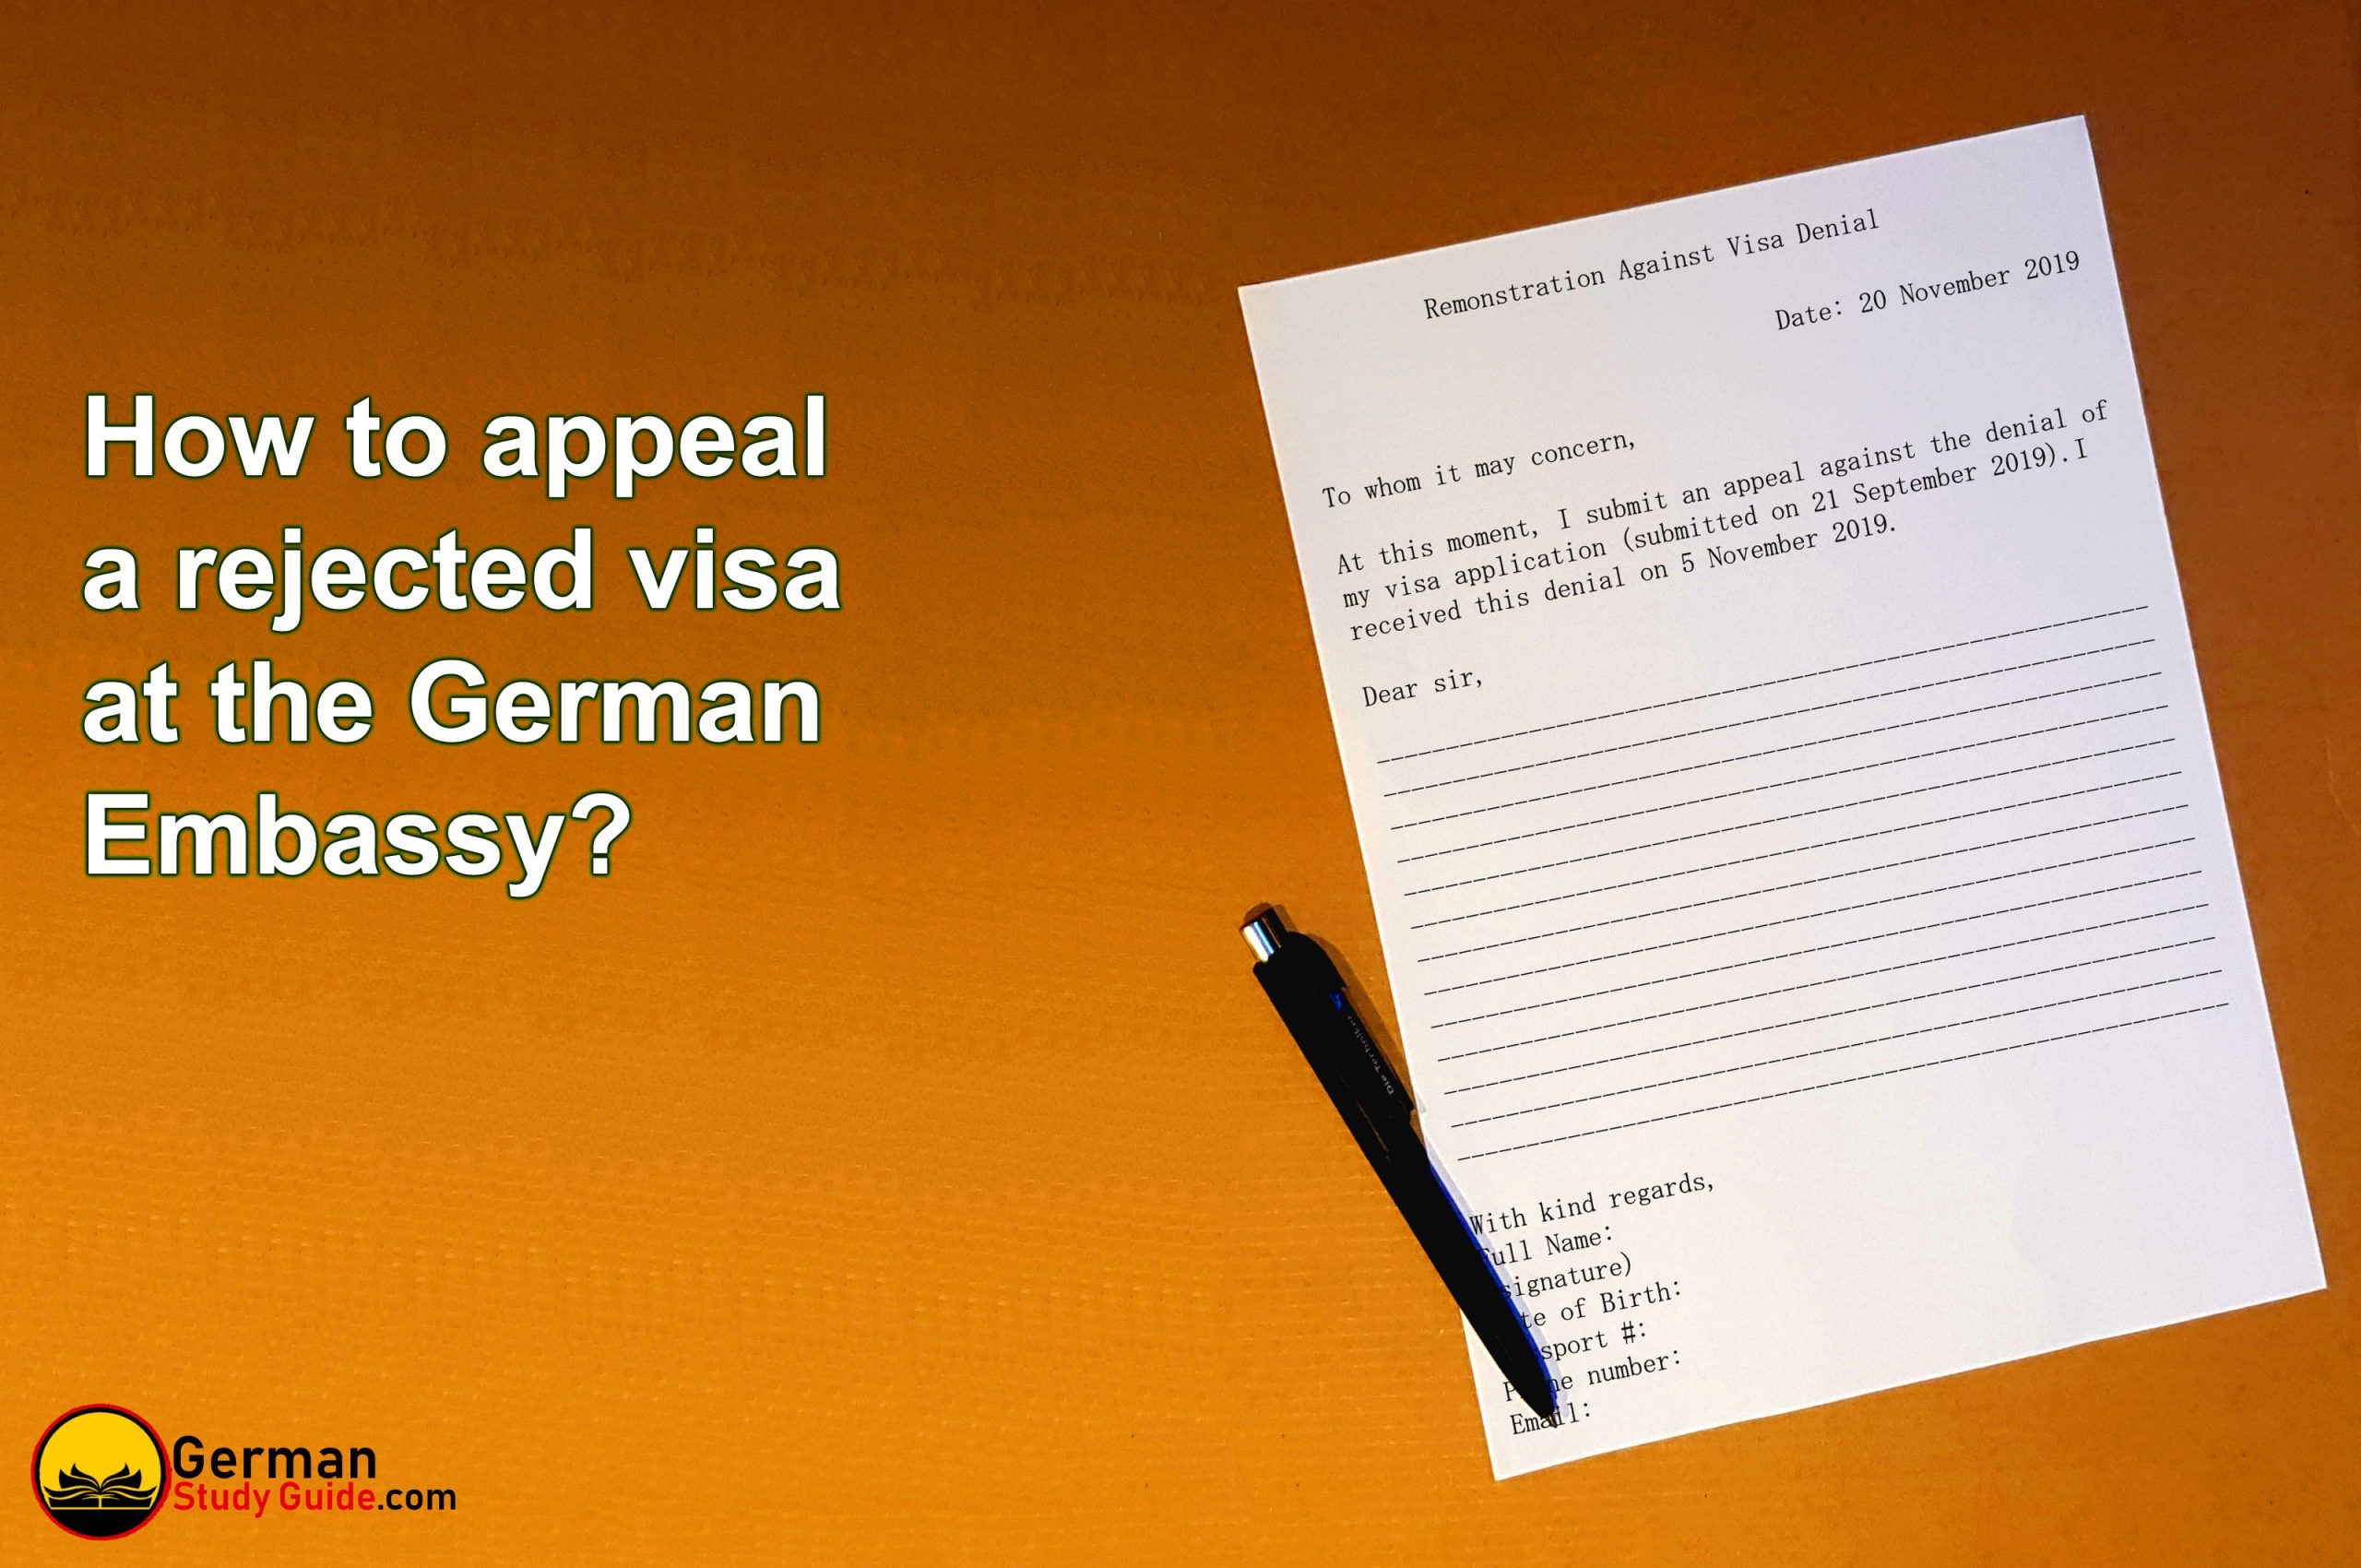 How to appeal a rejected visa at the German embassy?